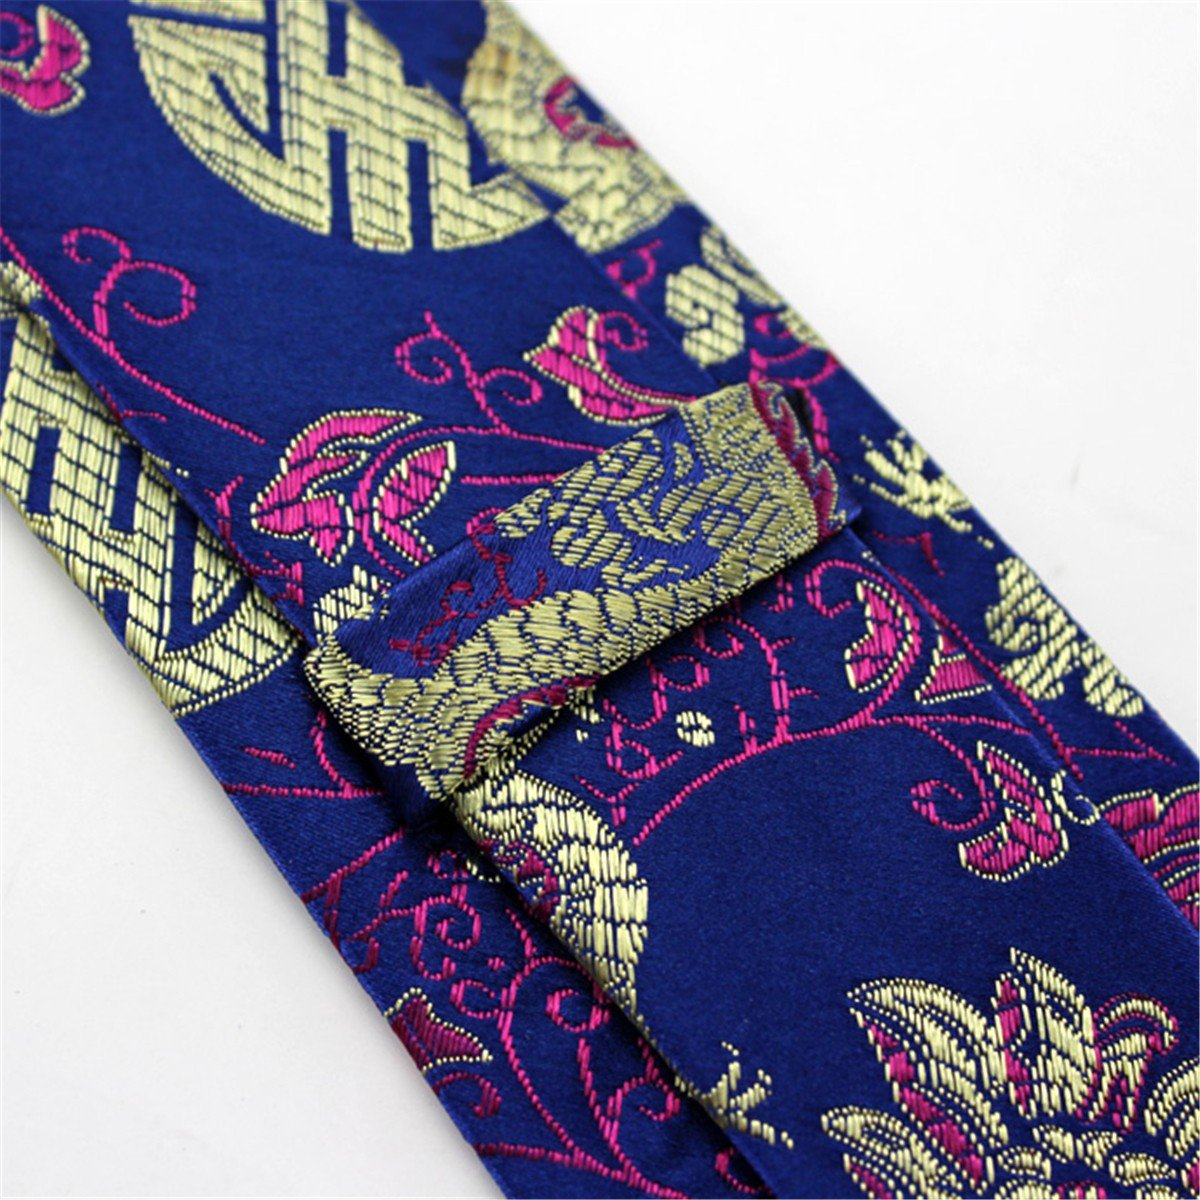 HXCMAN 7cm blue red floral Chinese dragon necktie classic design 100/% silk men tie all-match party casual business banquet wedding groom in gift box